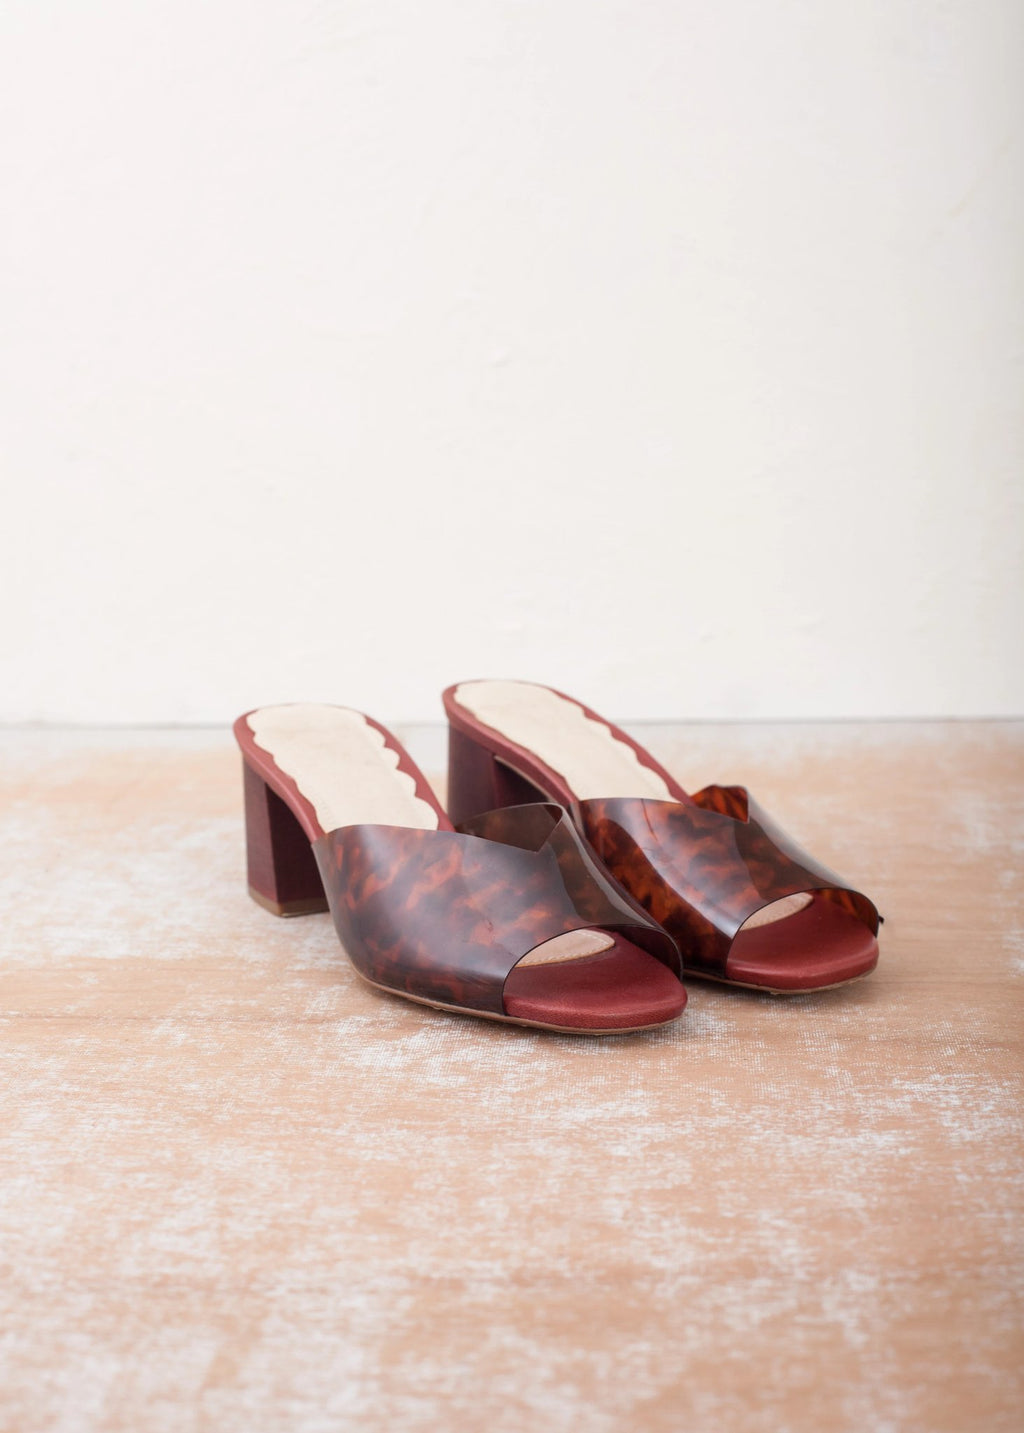 Mia Tortoiseshell Vinyl Mule with Wood Block Heel